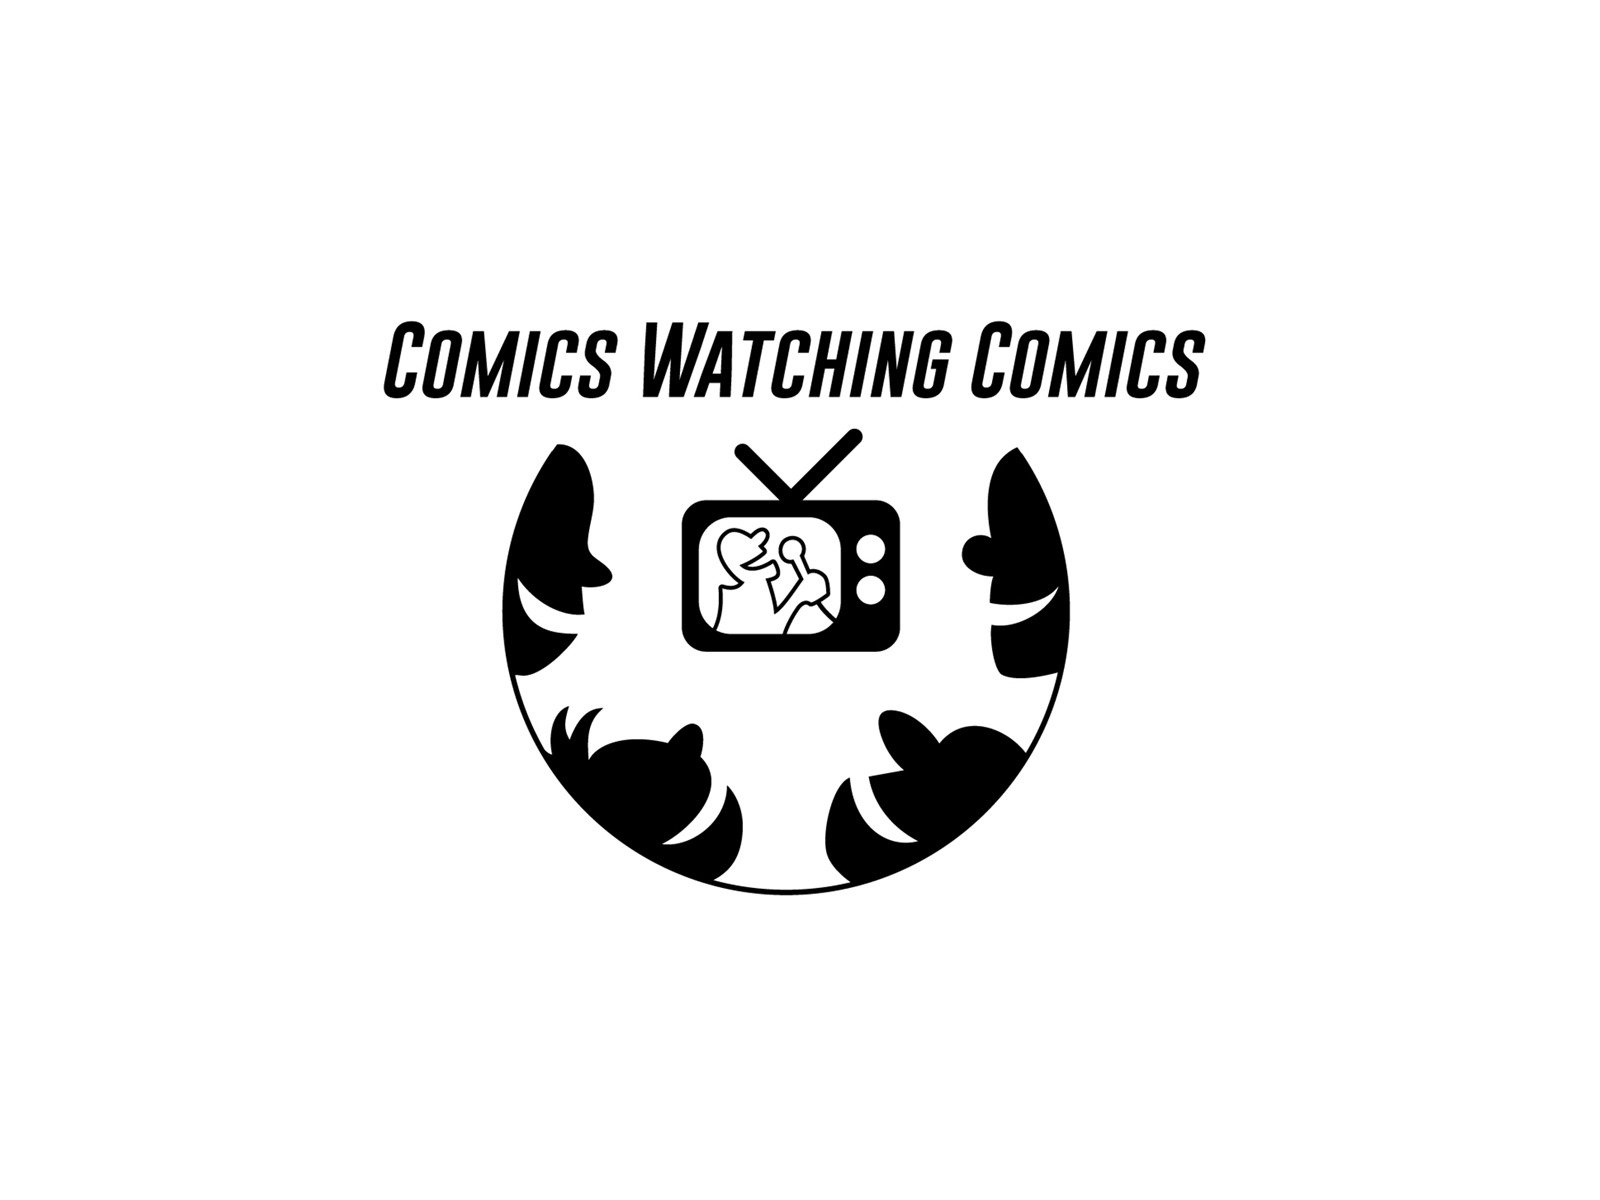 Comics Watching Comics